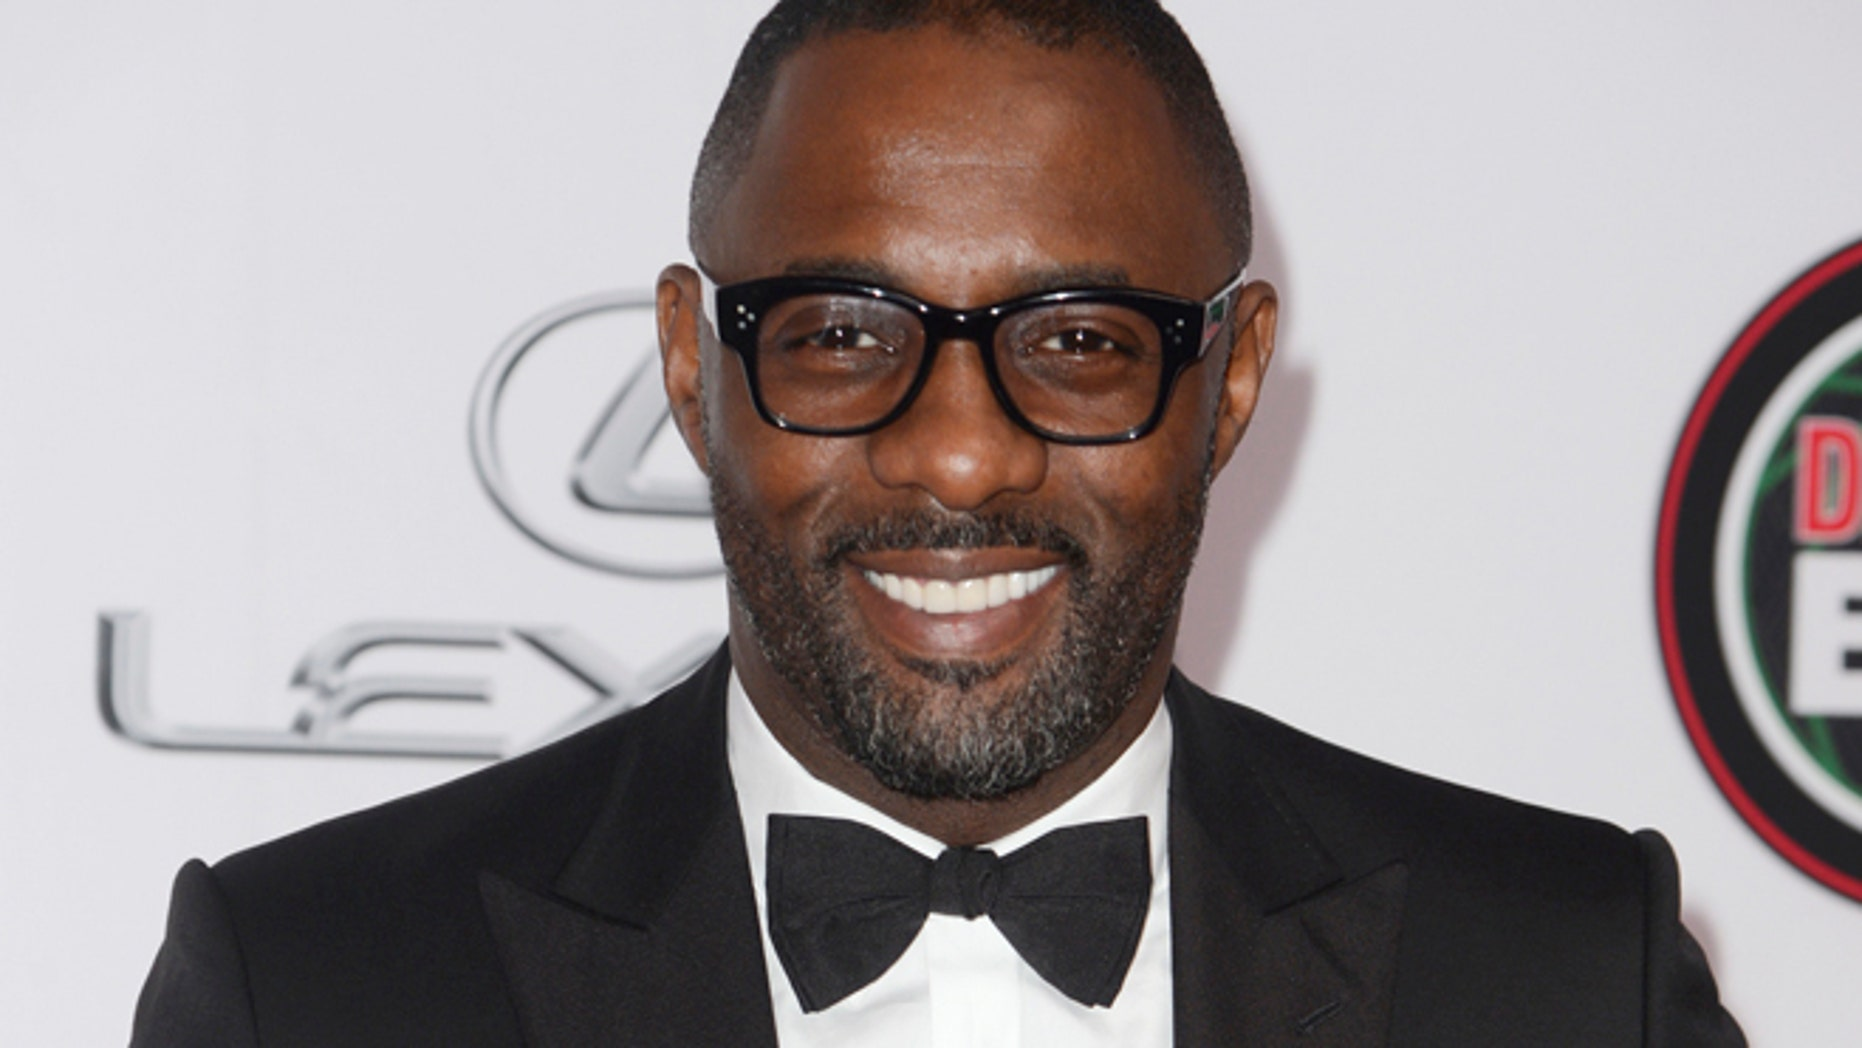 Feb. 22, 2014: Idris Elba attends the 45th NAACP Image Awards in Pasadena, California. (Reuters)